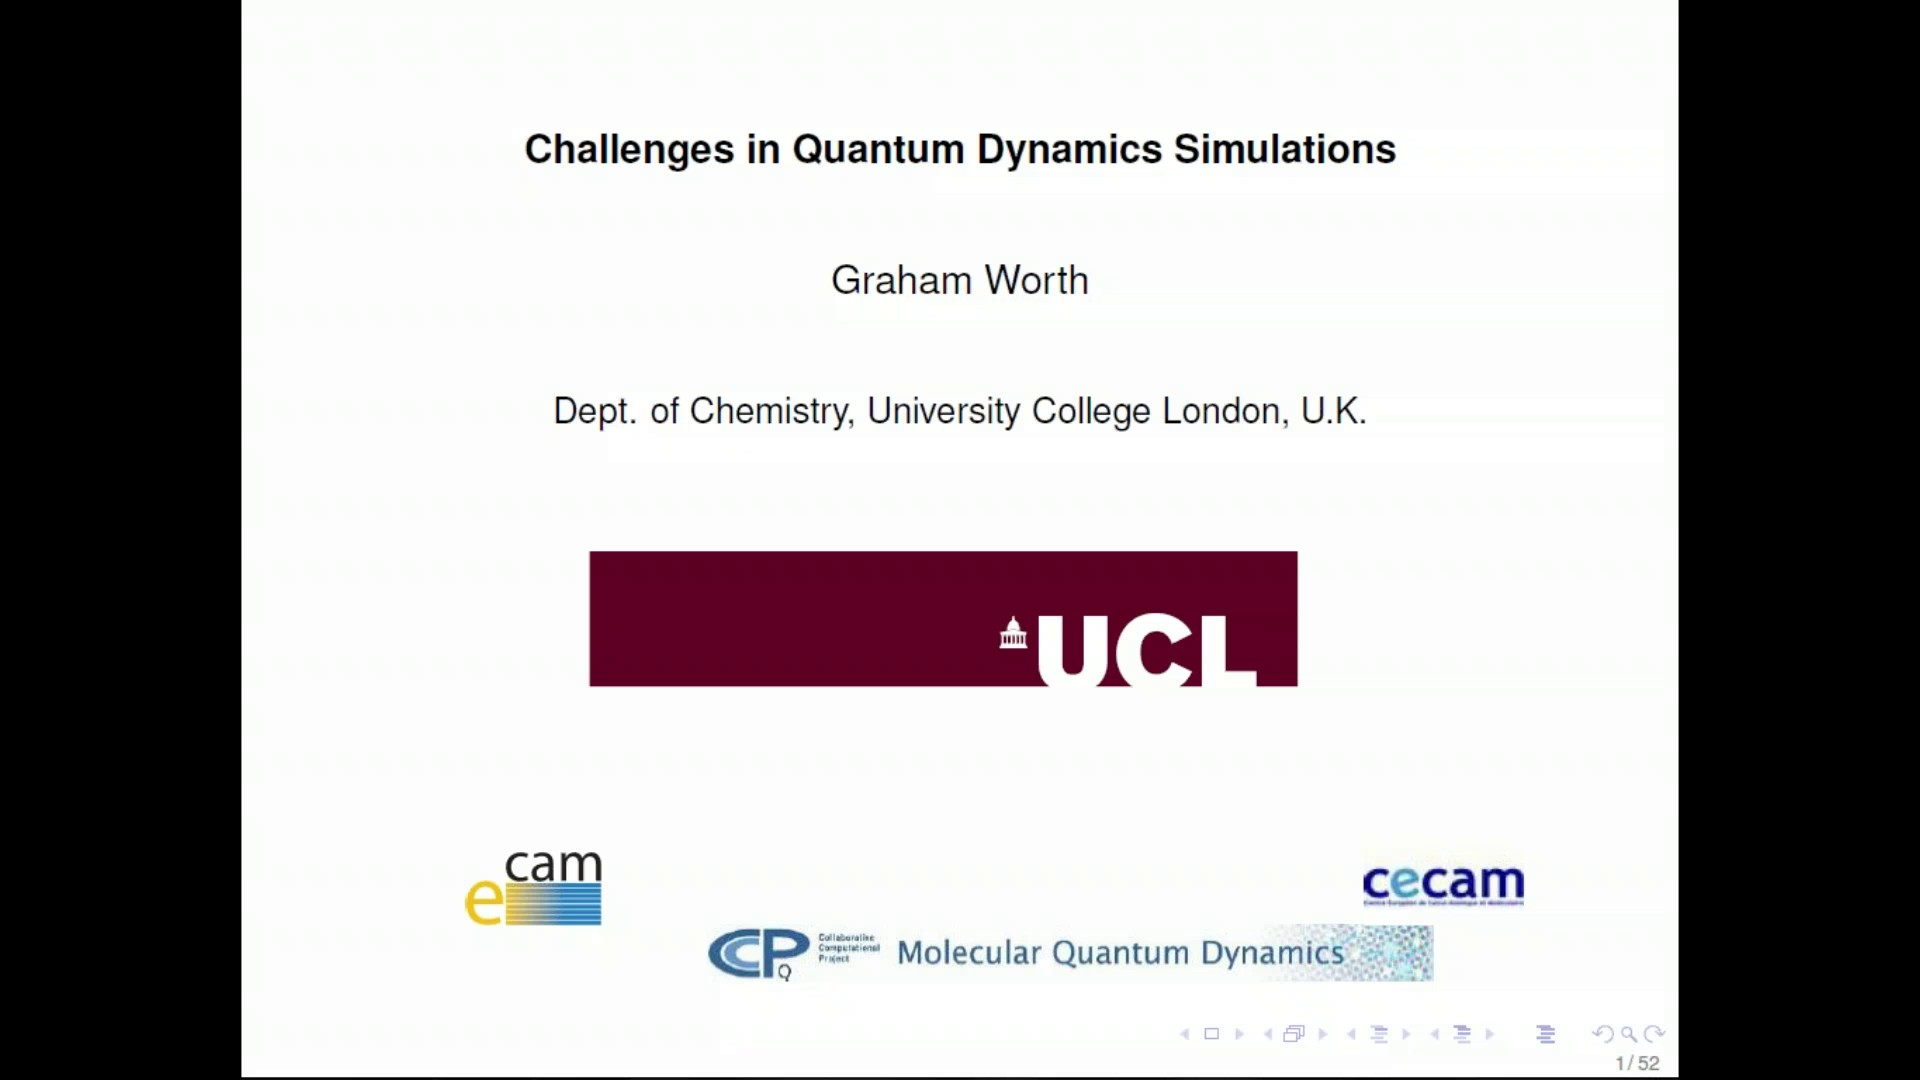 Thumbnail of Challenges in Quantum Dynamics Simulations